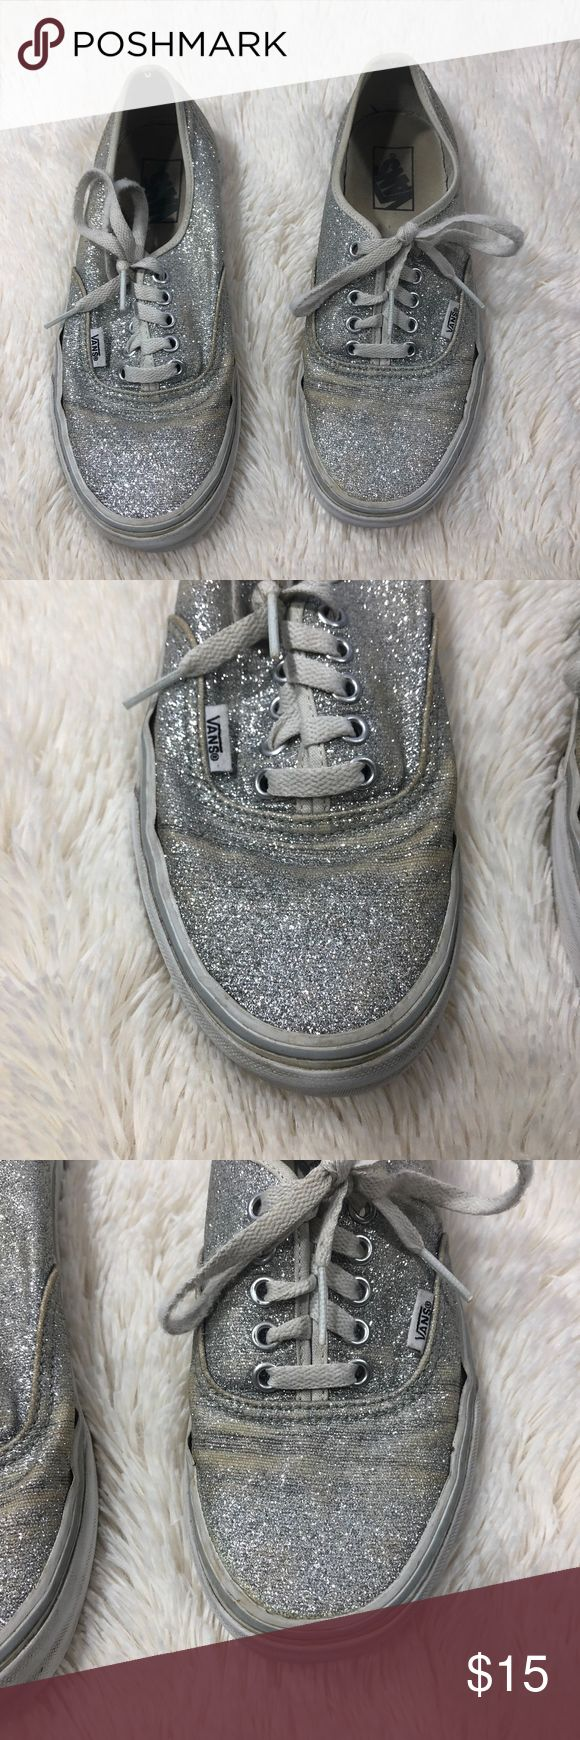 VANS Womens 9 Silver Glitter Chunky Lace Shoes Vans Womens 9 Mens 7.5 Silver Grey Sparkle Glitter Chunky Skate Shoes Flat  Style: Low Top Flat Skate Shoes  Brand: VANS  Size: Womens 9 Men's 7.5 Color: Grey Sparkle Glitter Shimmer Condition: Please see photos for condition Vans Shoes Athletic Shoes